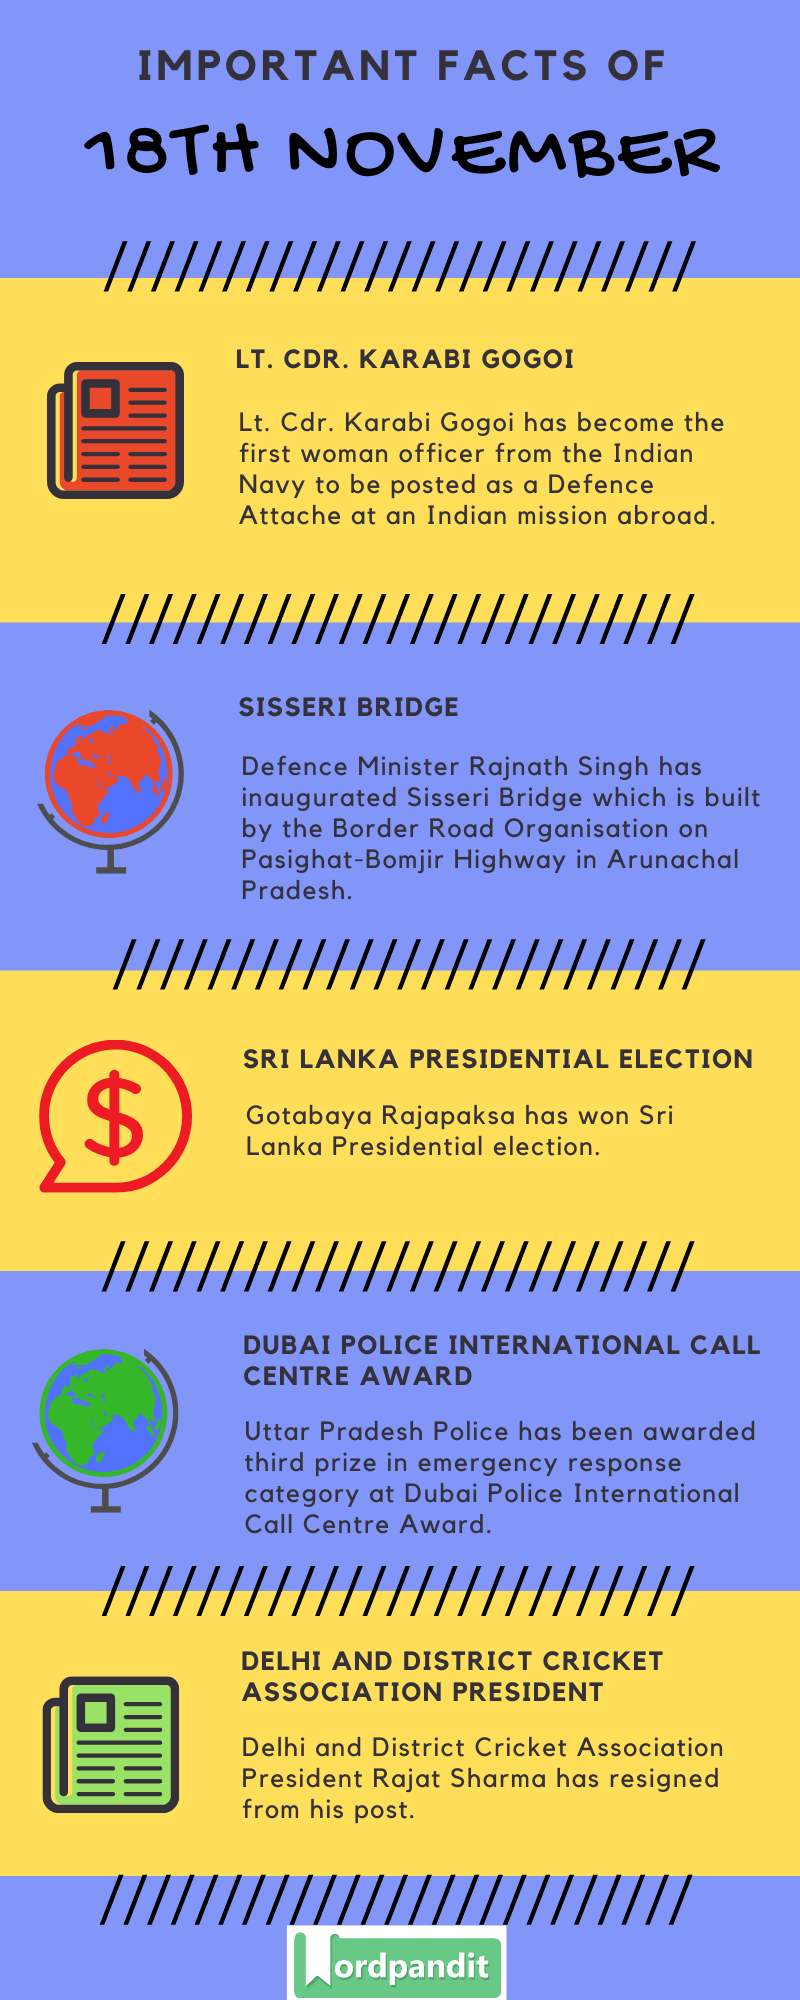 Daily Current Affairs 18 November 2019 Current Affairs Quiz 18 November 2019 Current Affairs Infographic